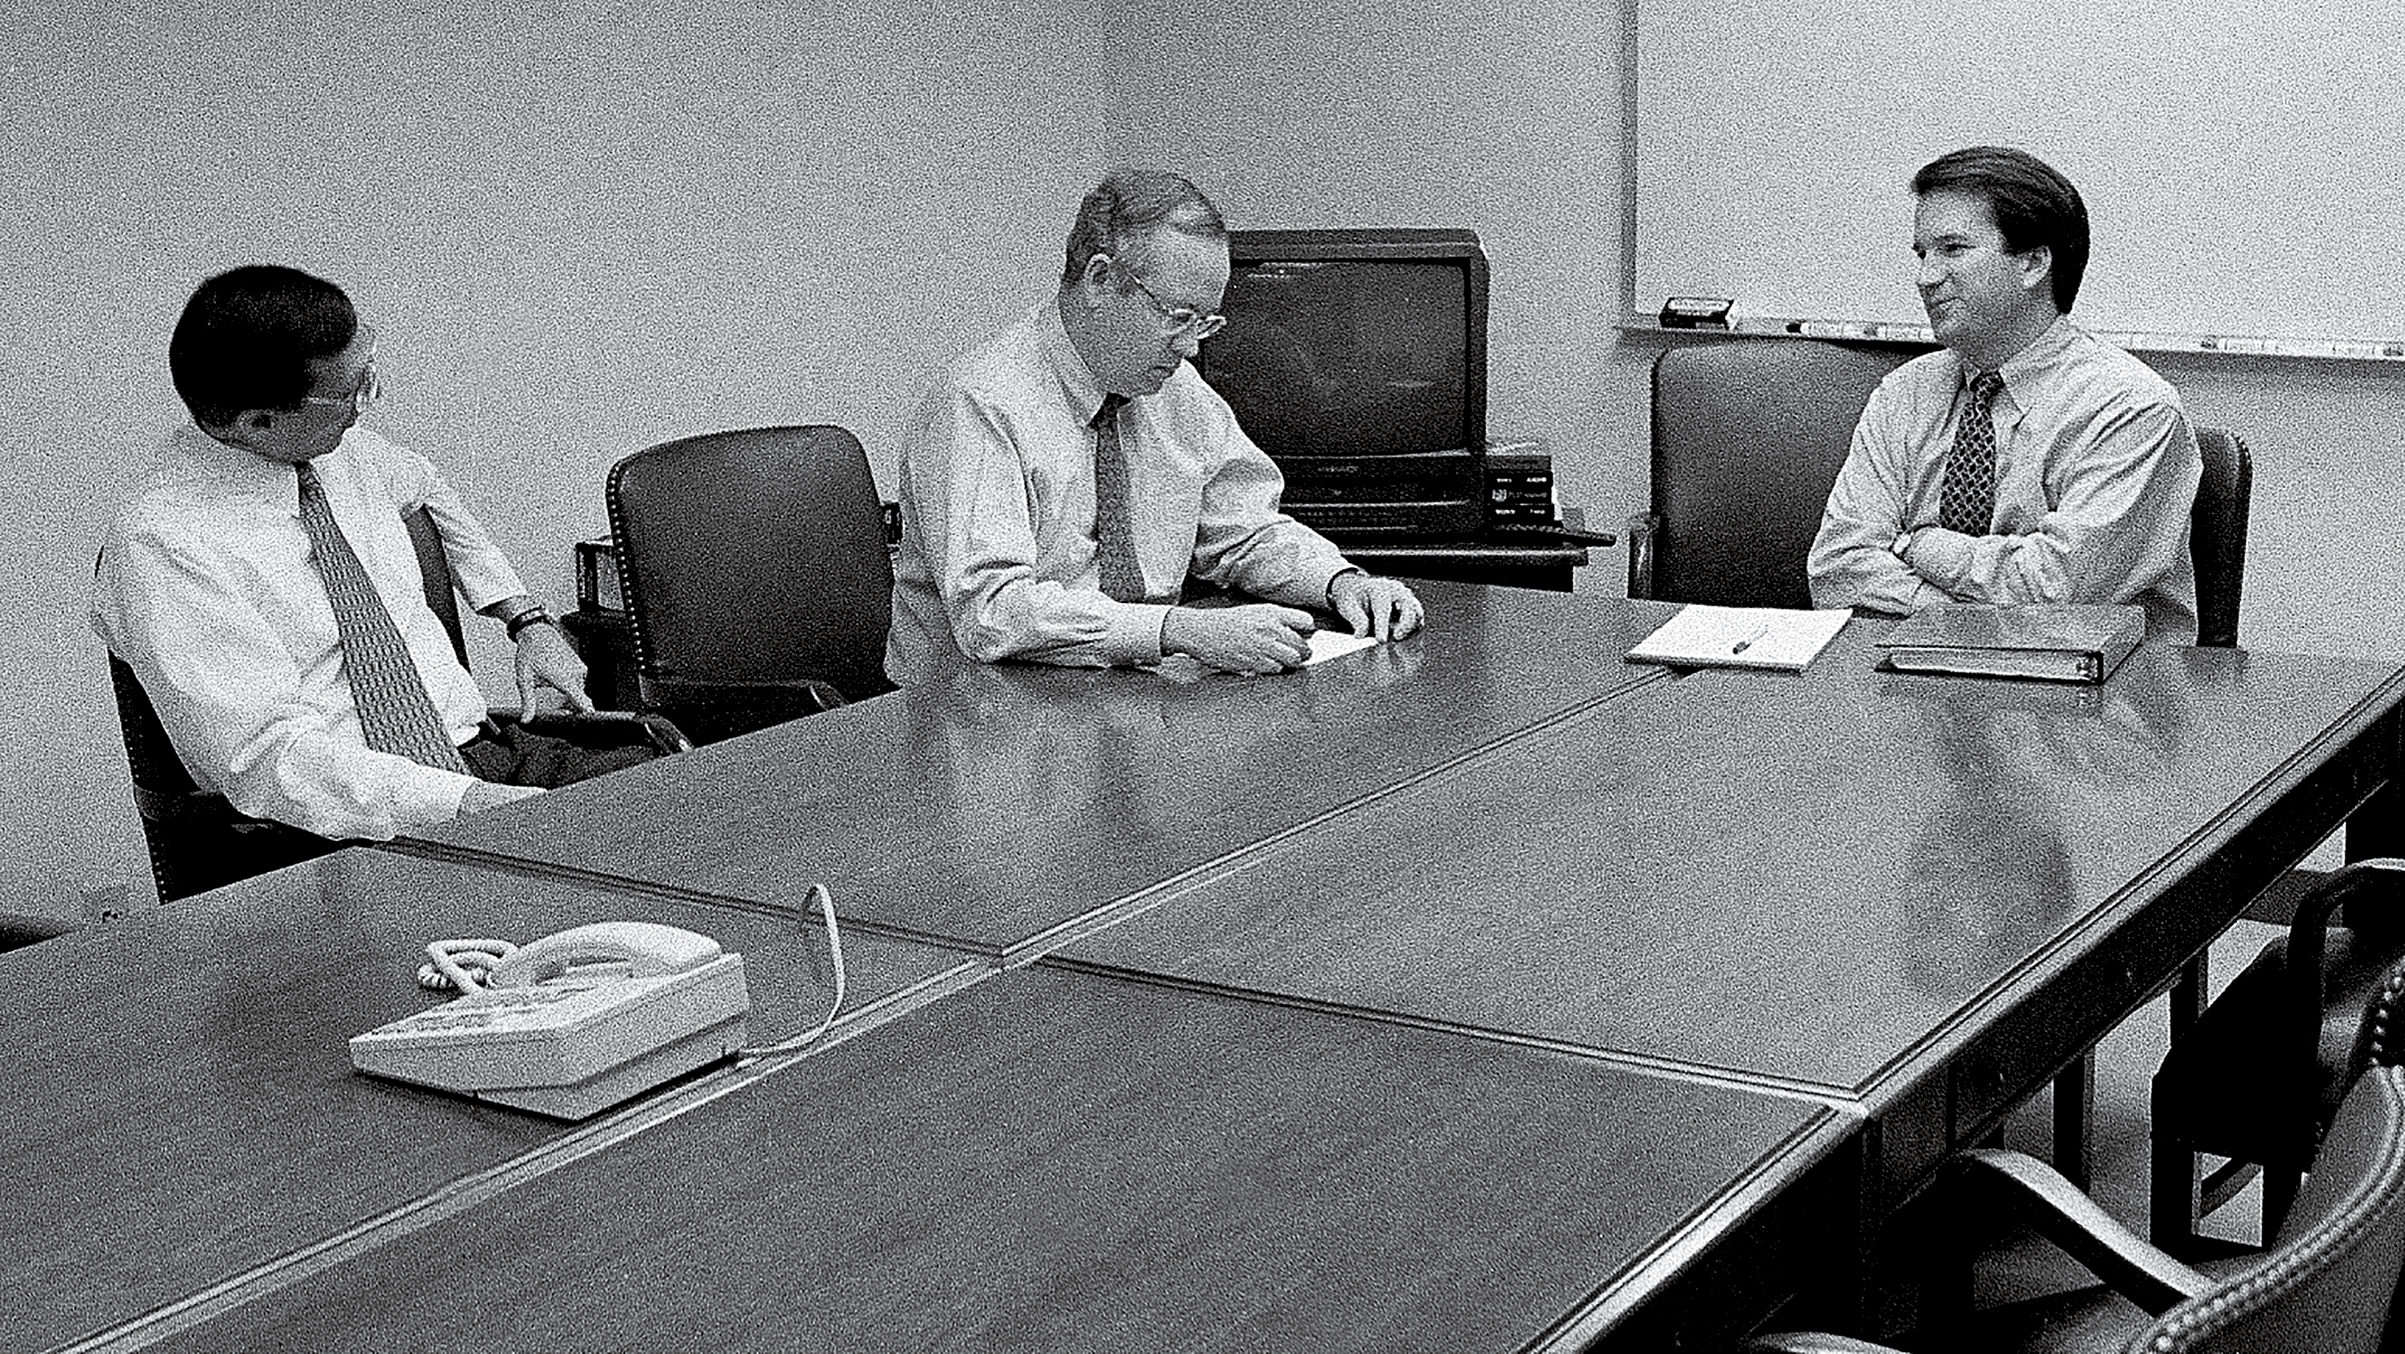 Kavanaugh with Kenneth Starr, independent counsel during the Whitewater investigation, in 1996